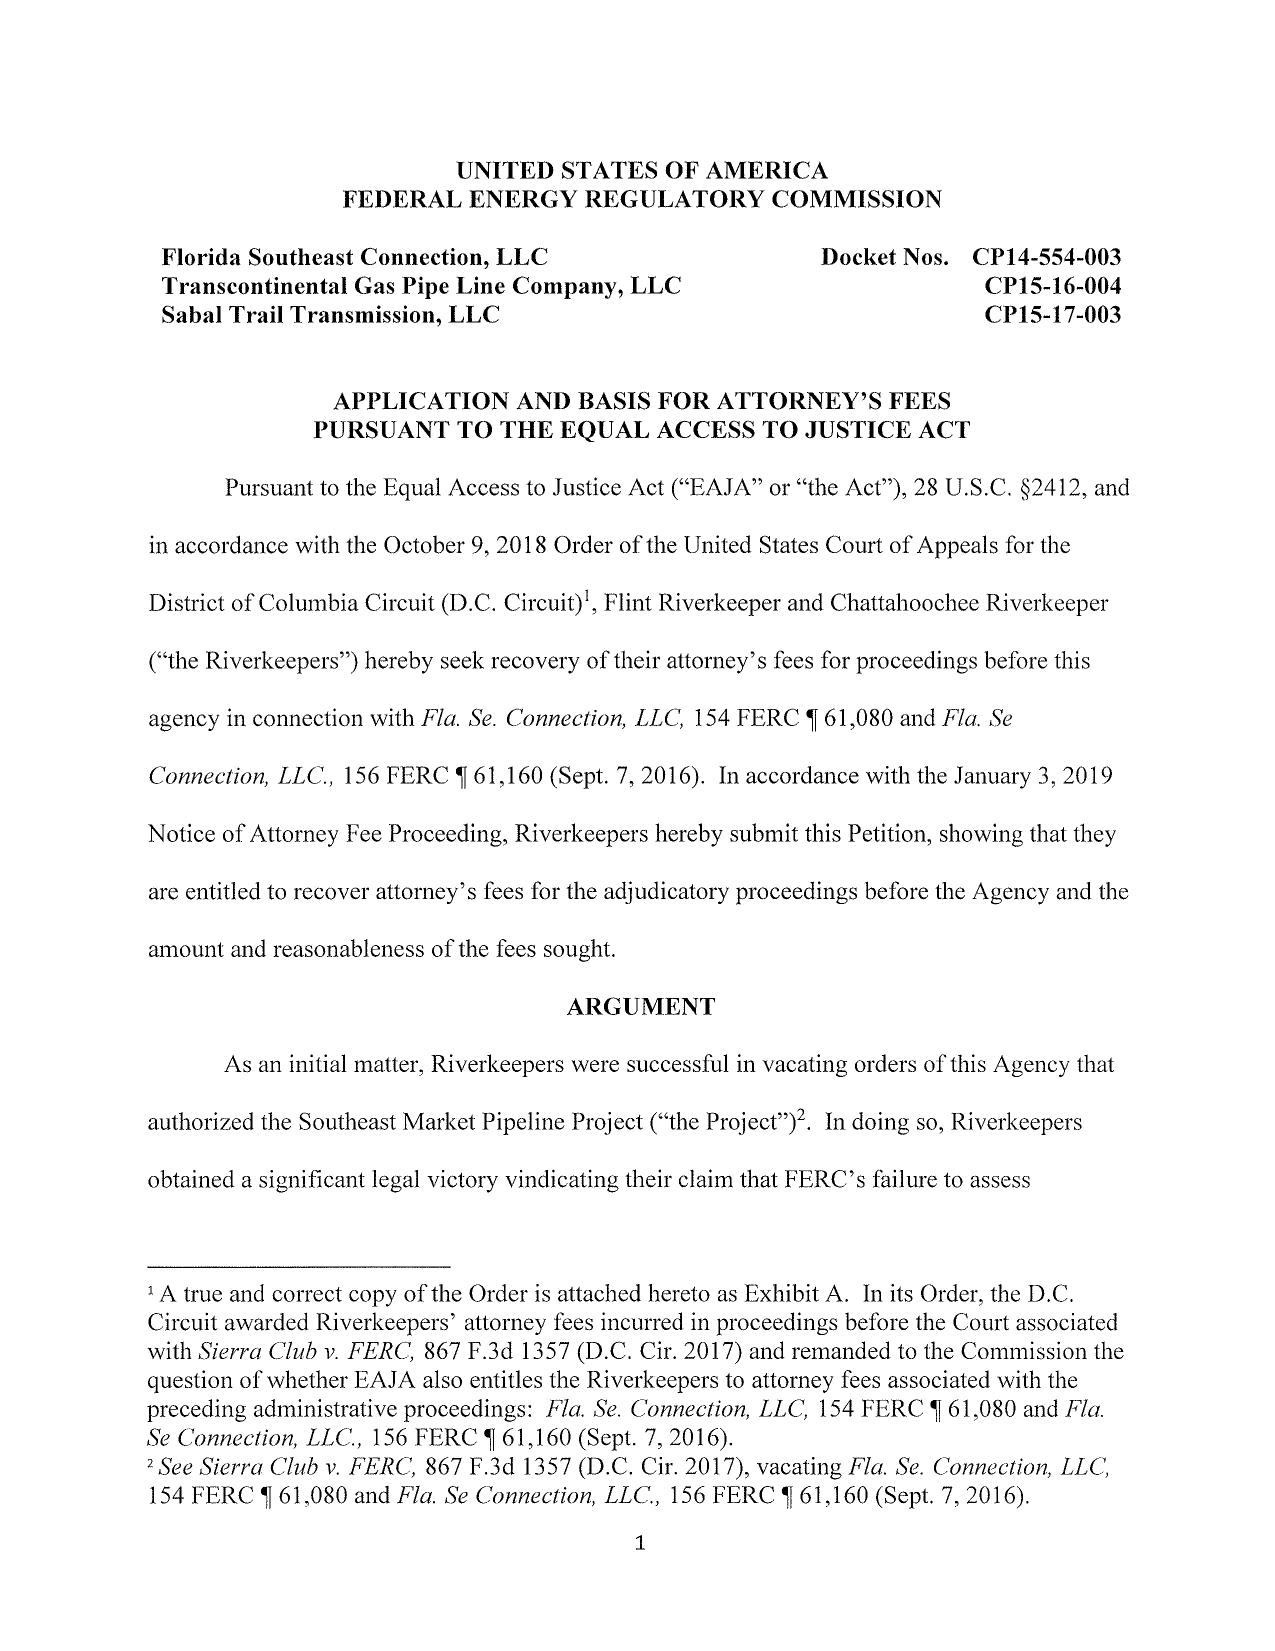 1275x1651 Application and Argument, Letter, in Riverkeepers seek attorney's fees for legal victory against FERC and Sabal Trail, by Kimberly A. Sturm, 4 February 2019